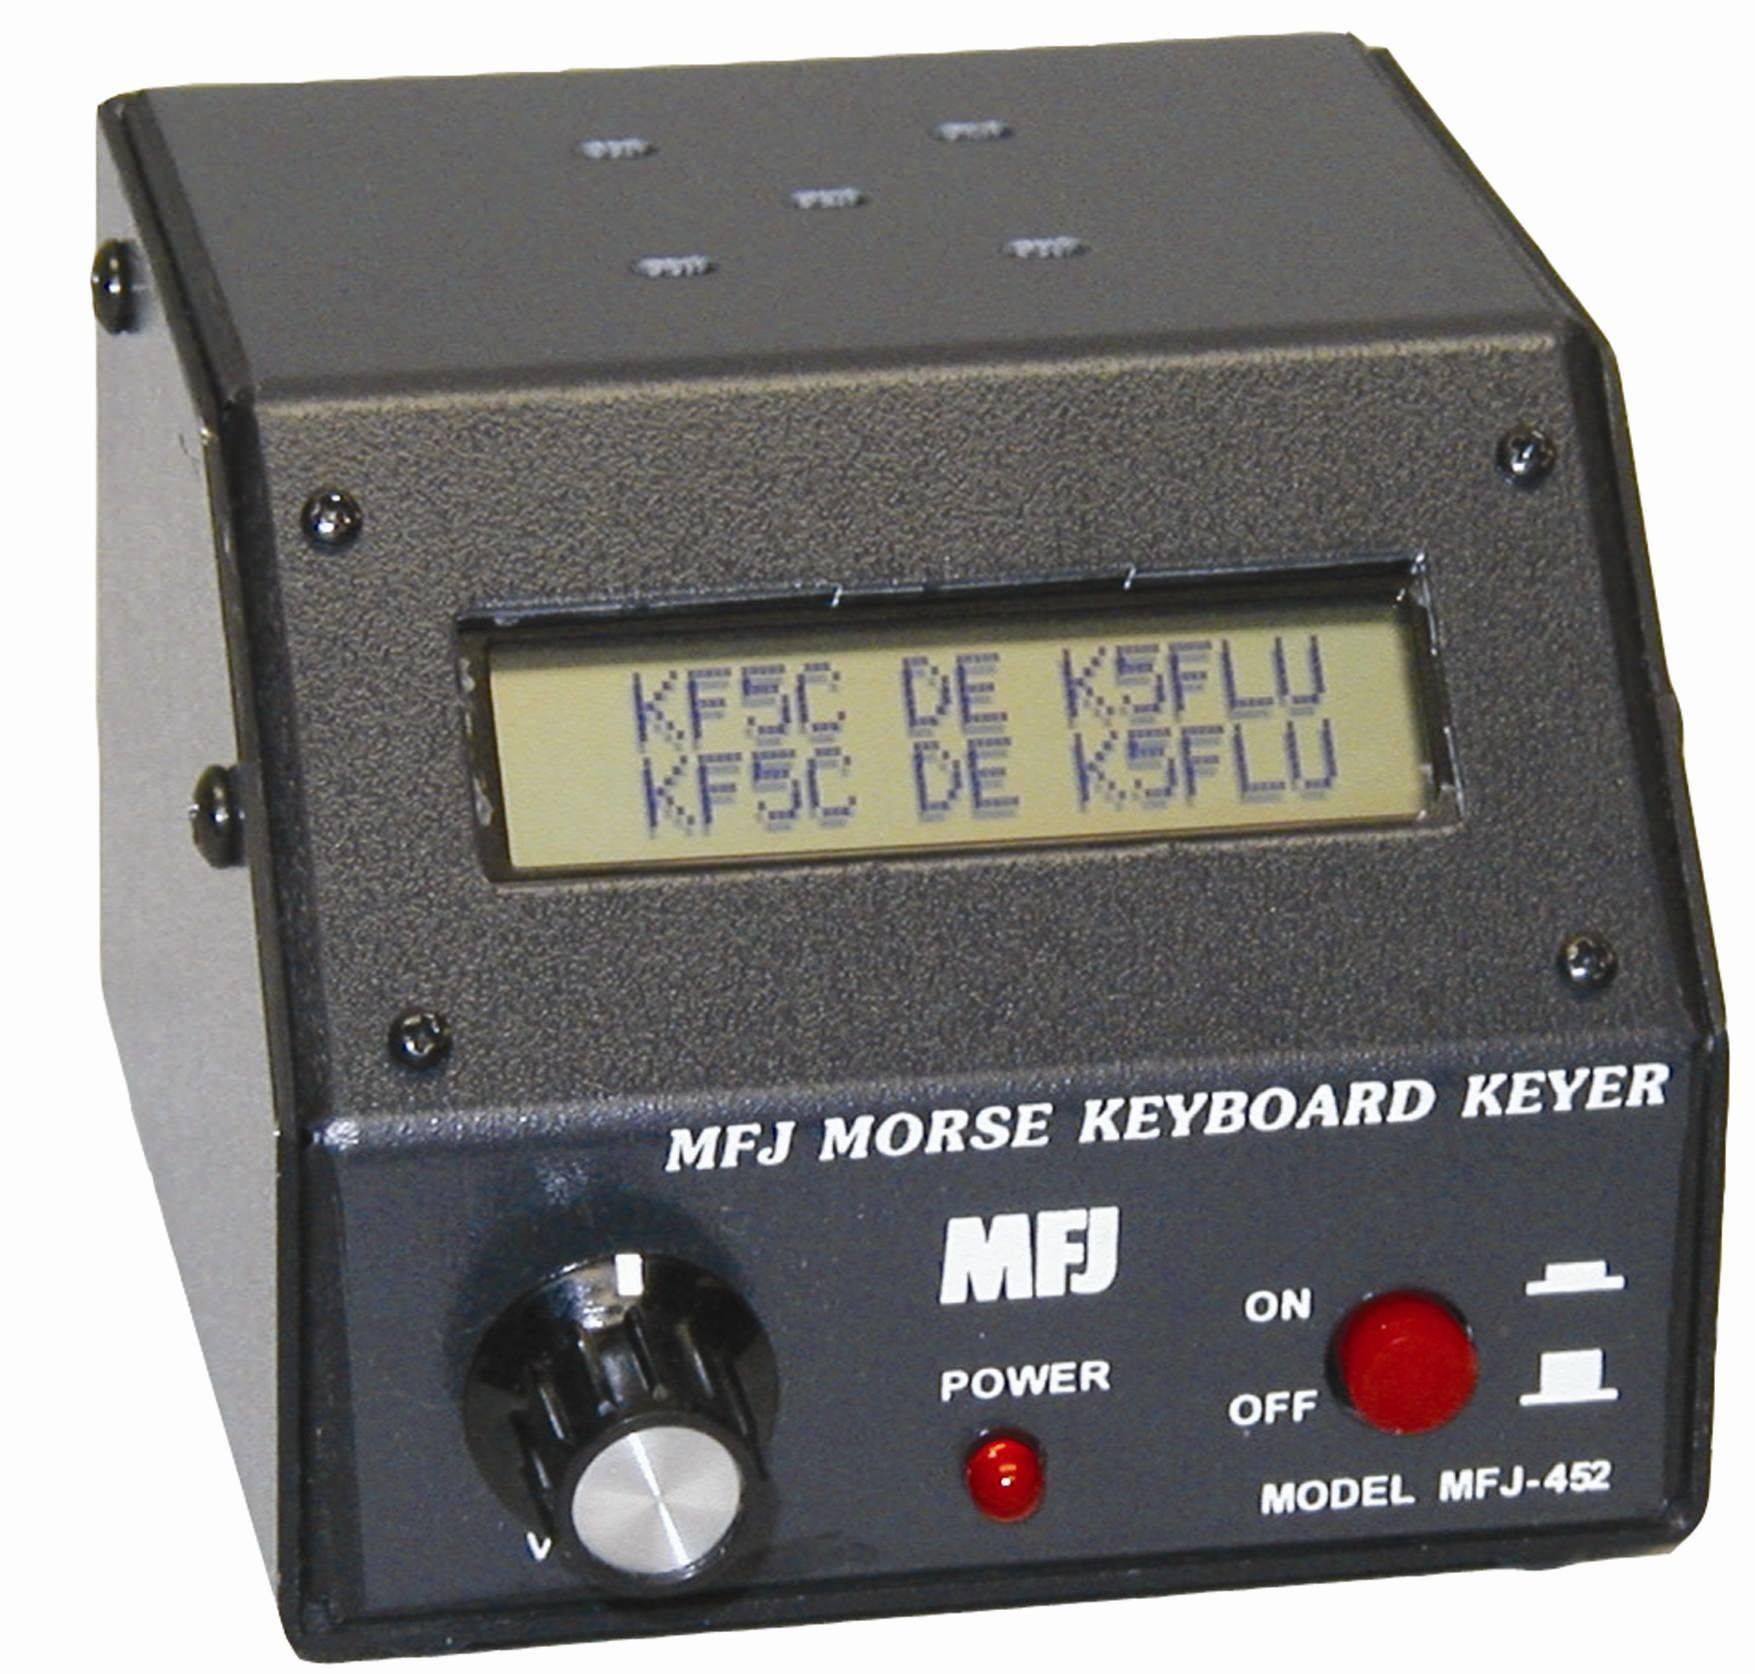 MFJ-452X CW Keyboard keyer with display and no keyboard